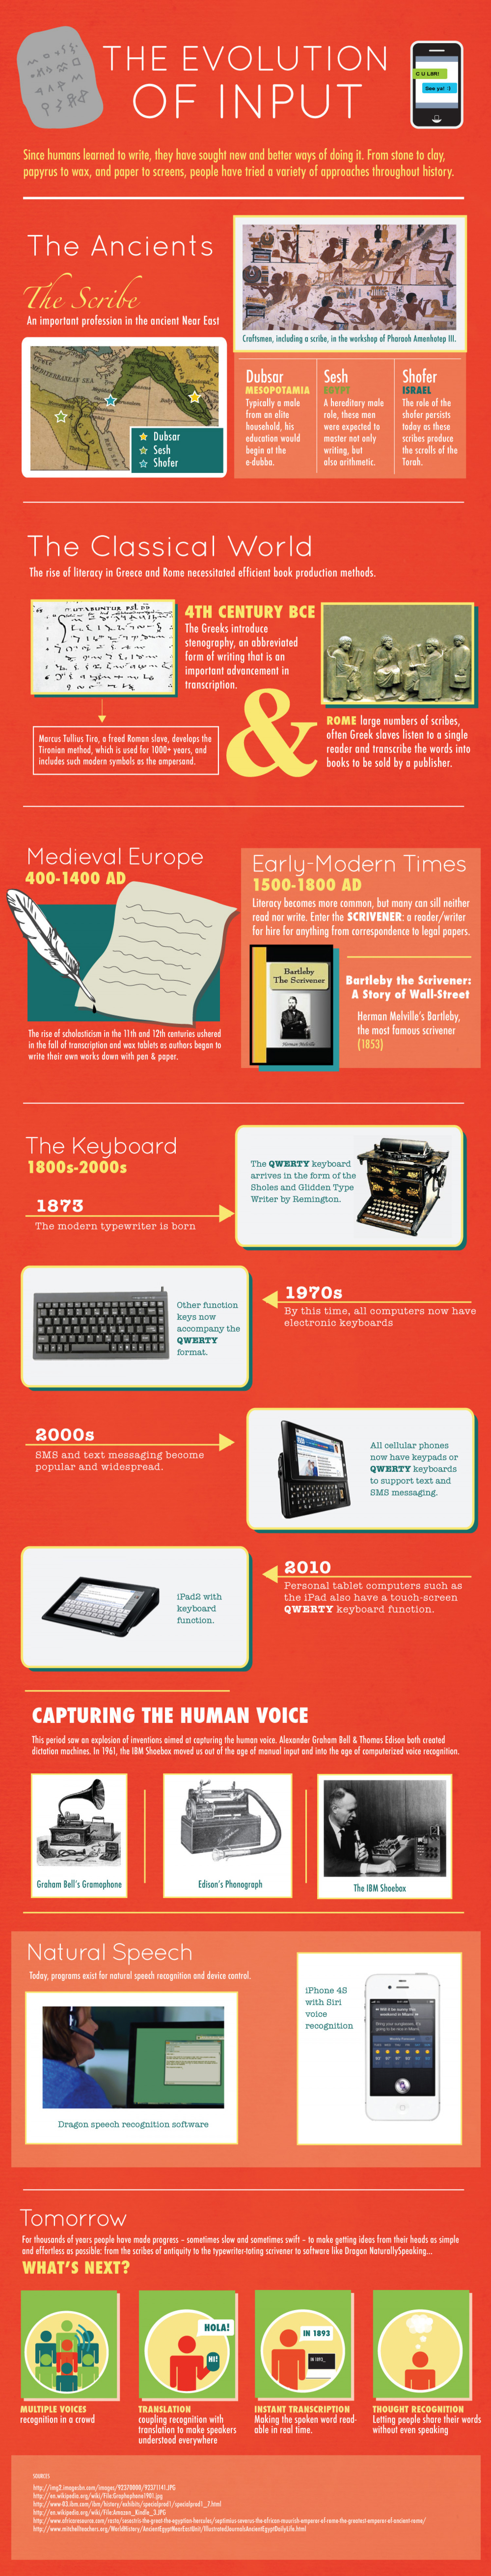 The Evolution of Input  Infographic